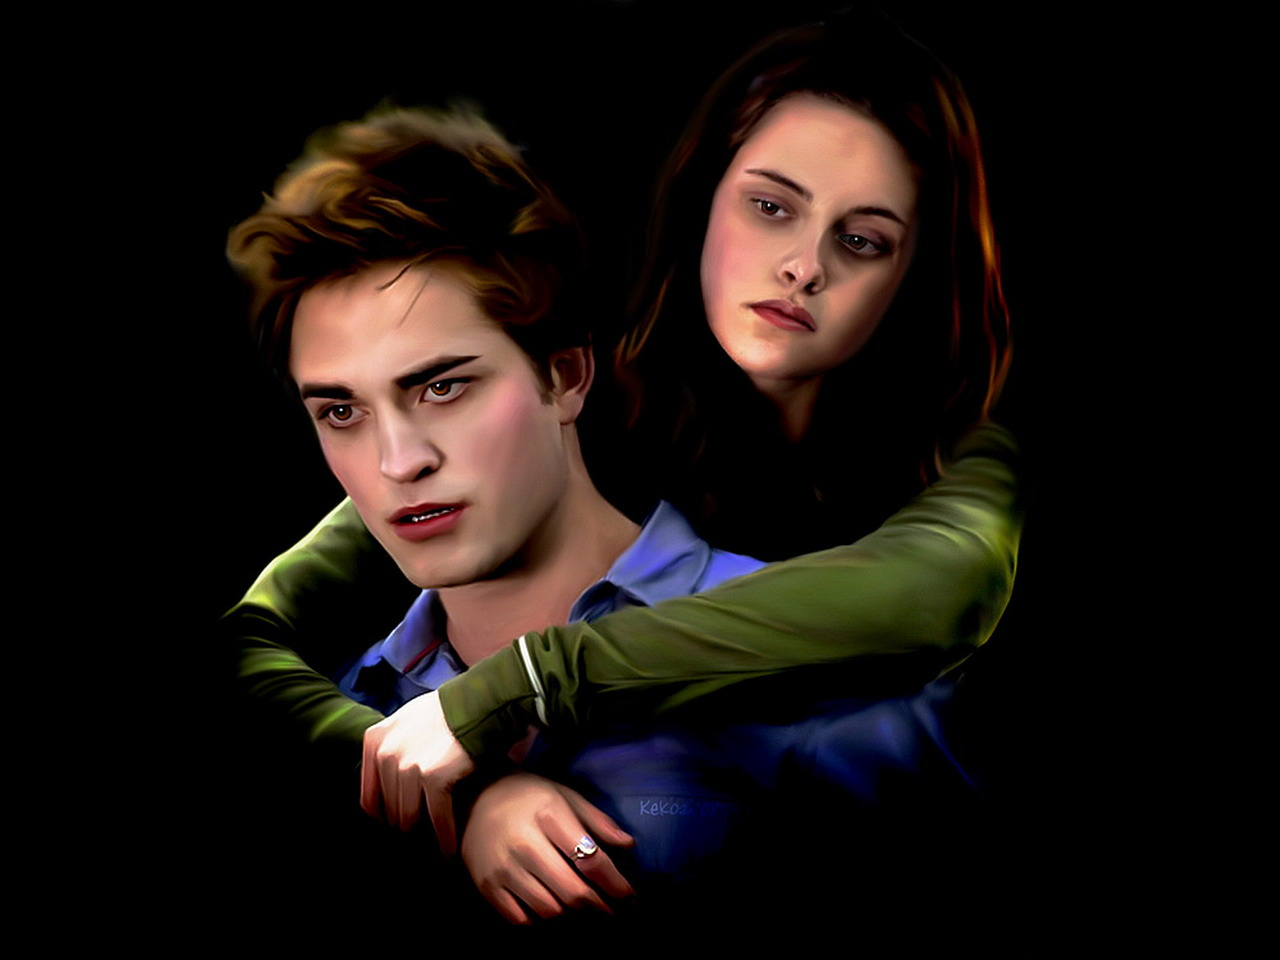 wallpapers twilight the twilight saga kristen stewart robert